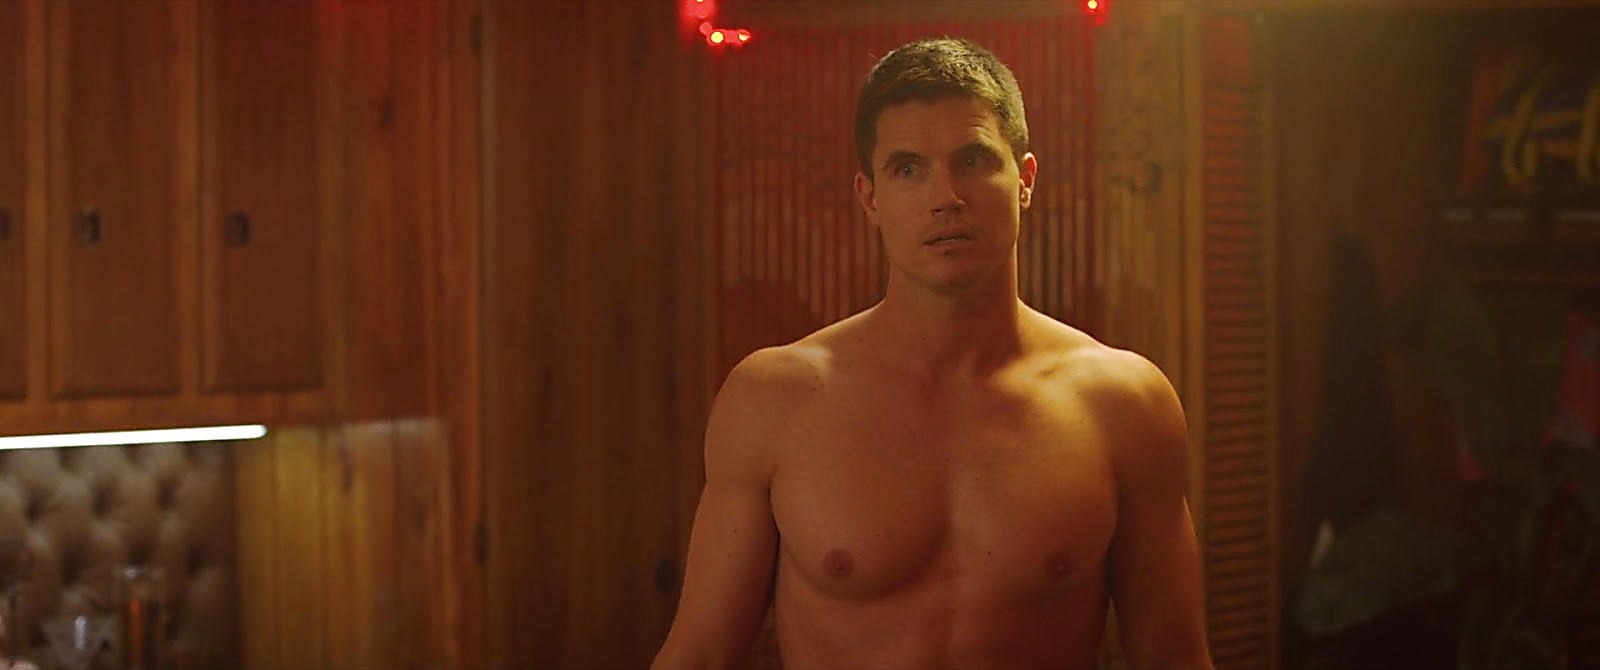 Robbie Amell sexy shirtless scene September 10, 2020, 8am